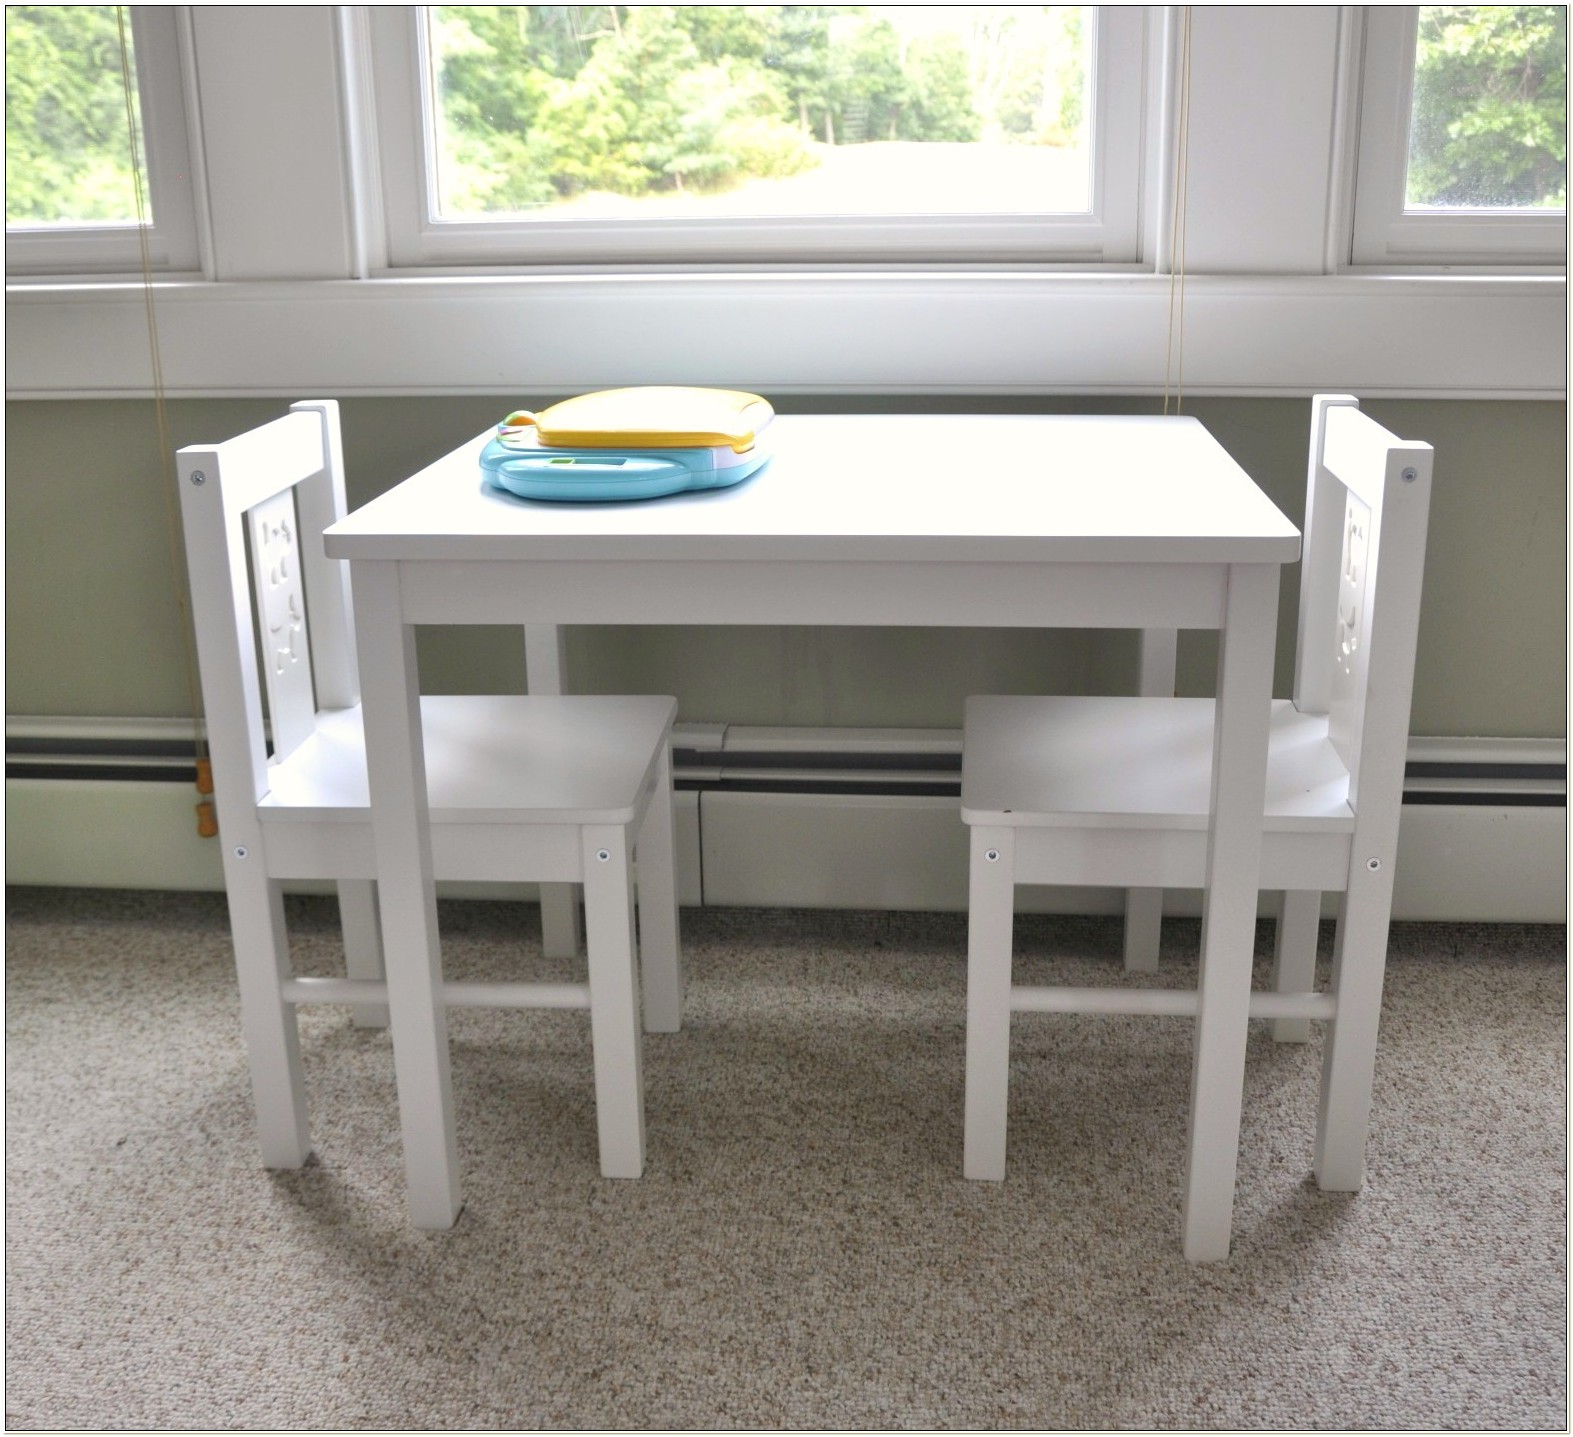 Ikea Kritter Childrens Table And Chairs